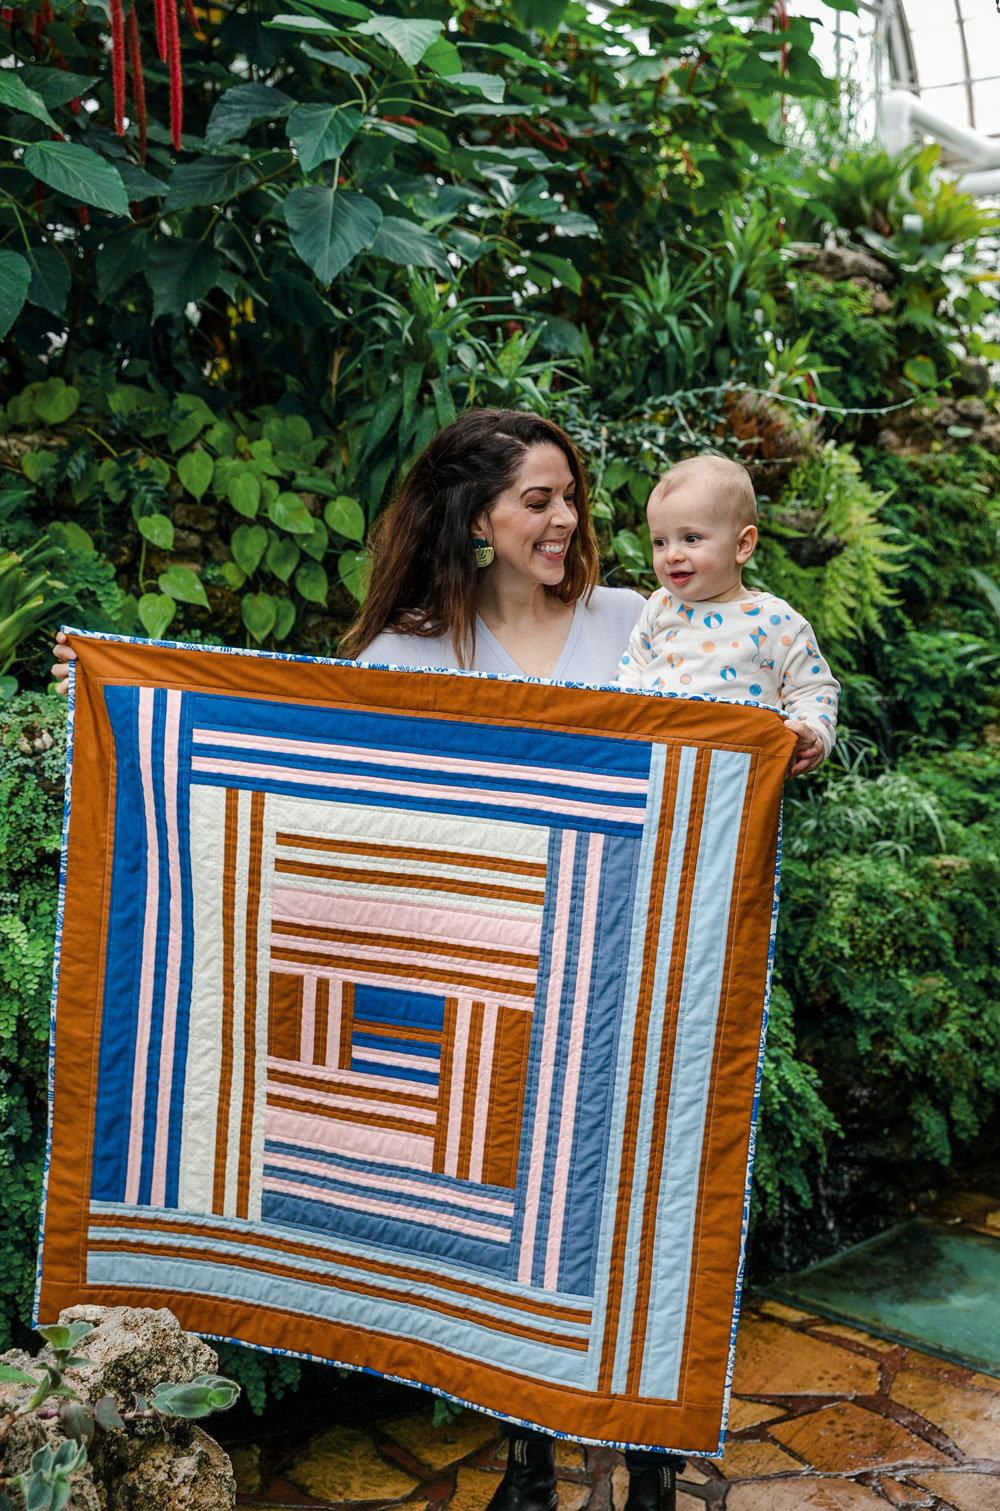 The Grow quilt pattern release March 12, 2020. It will include king, queen, twin, throw and baby quilt sizes. suzyquilts.com #modernbabyquilt